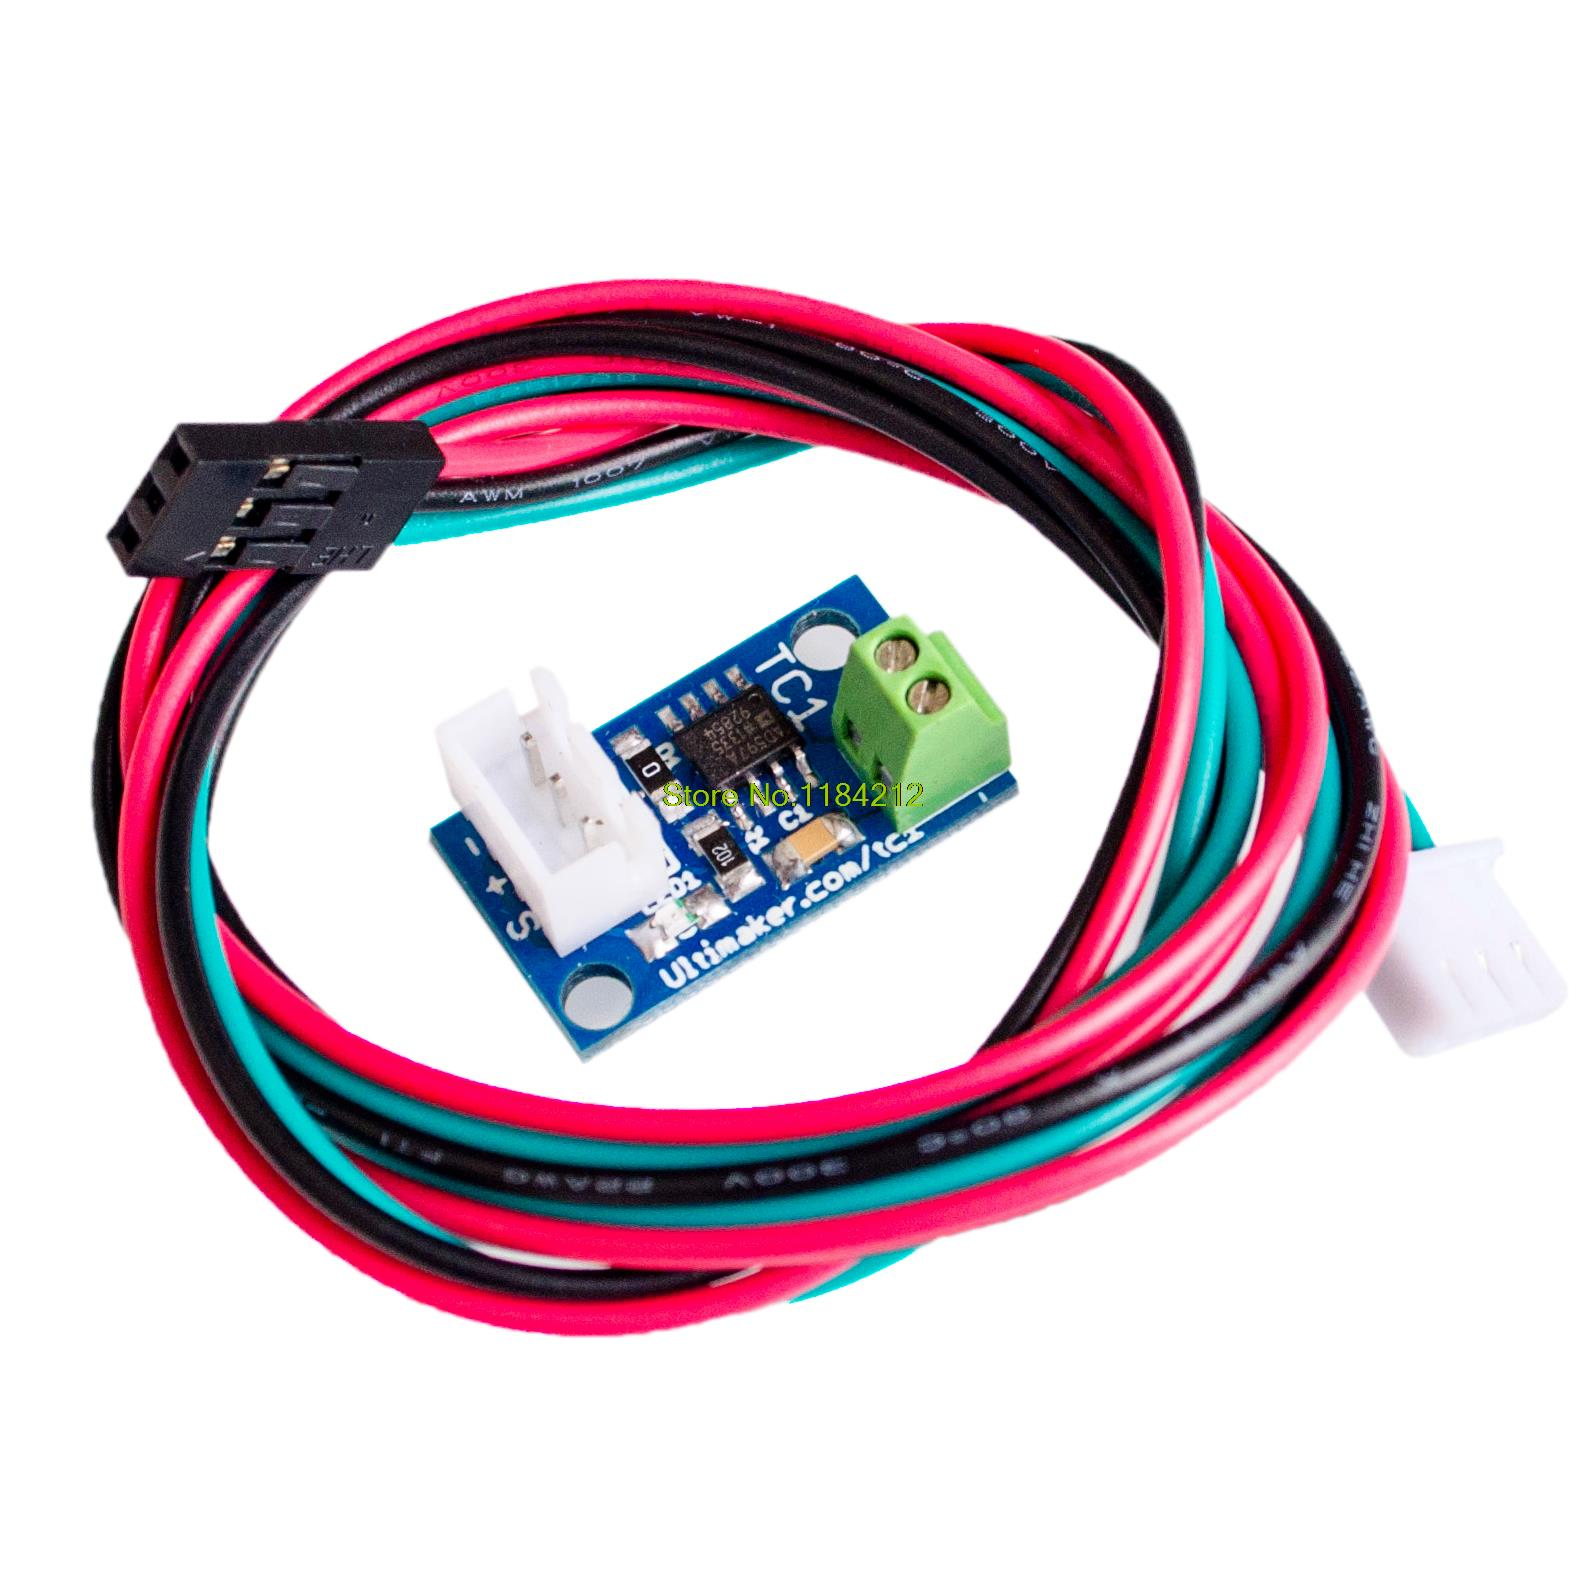 3 D Printer Accessory Ultimaker Ad597 Thermocouple Transmitter Circuit Thermal Control Top Quality In Integrated Circuits From Electronic Components